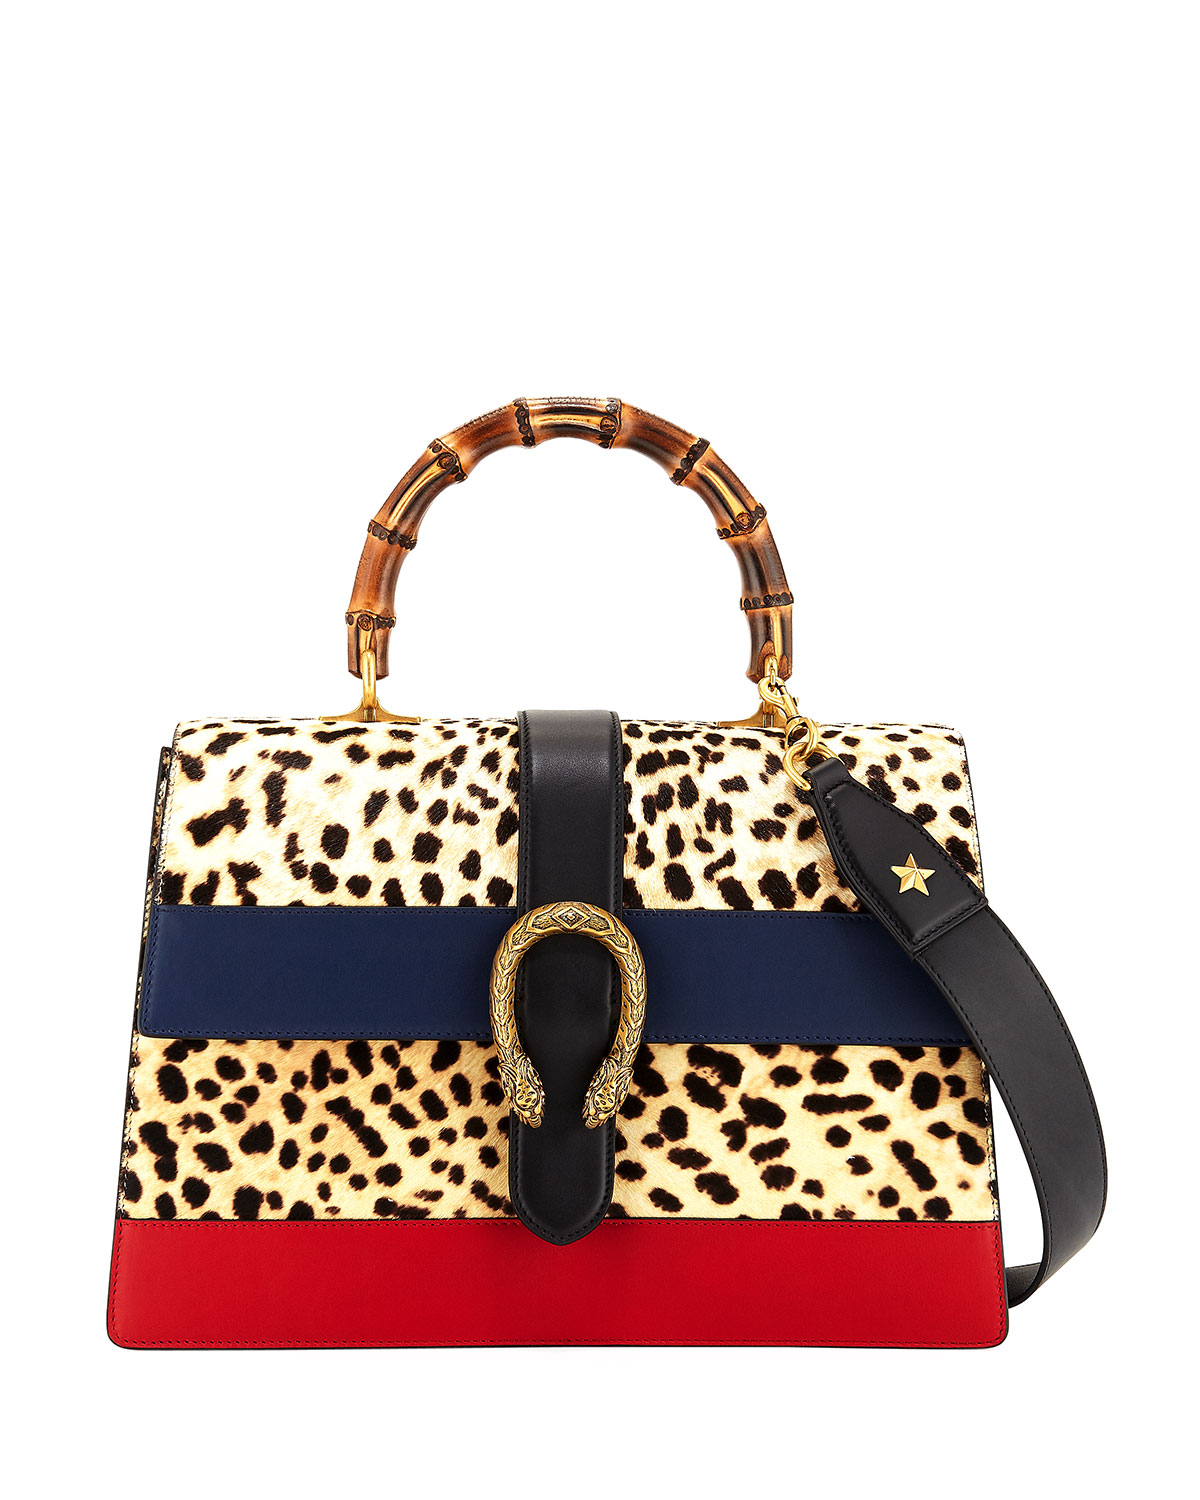 d10698f116e Gucci Dionysus Large Bamboo Top-Handle Bag in Leopard Calf Hair ...